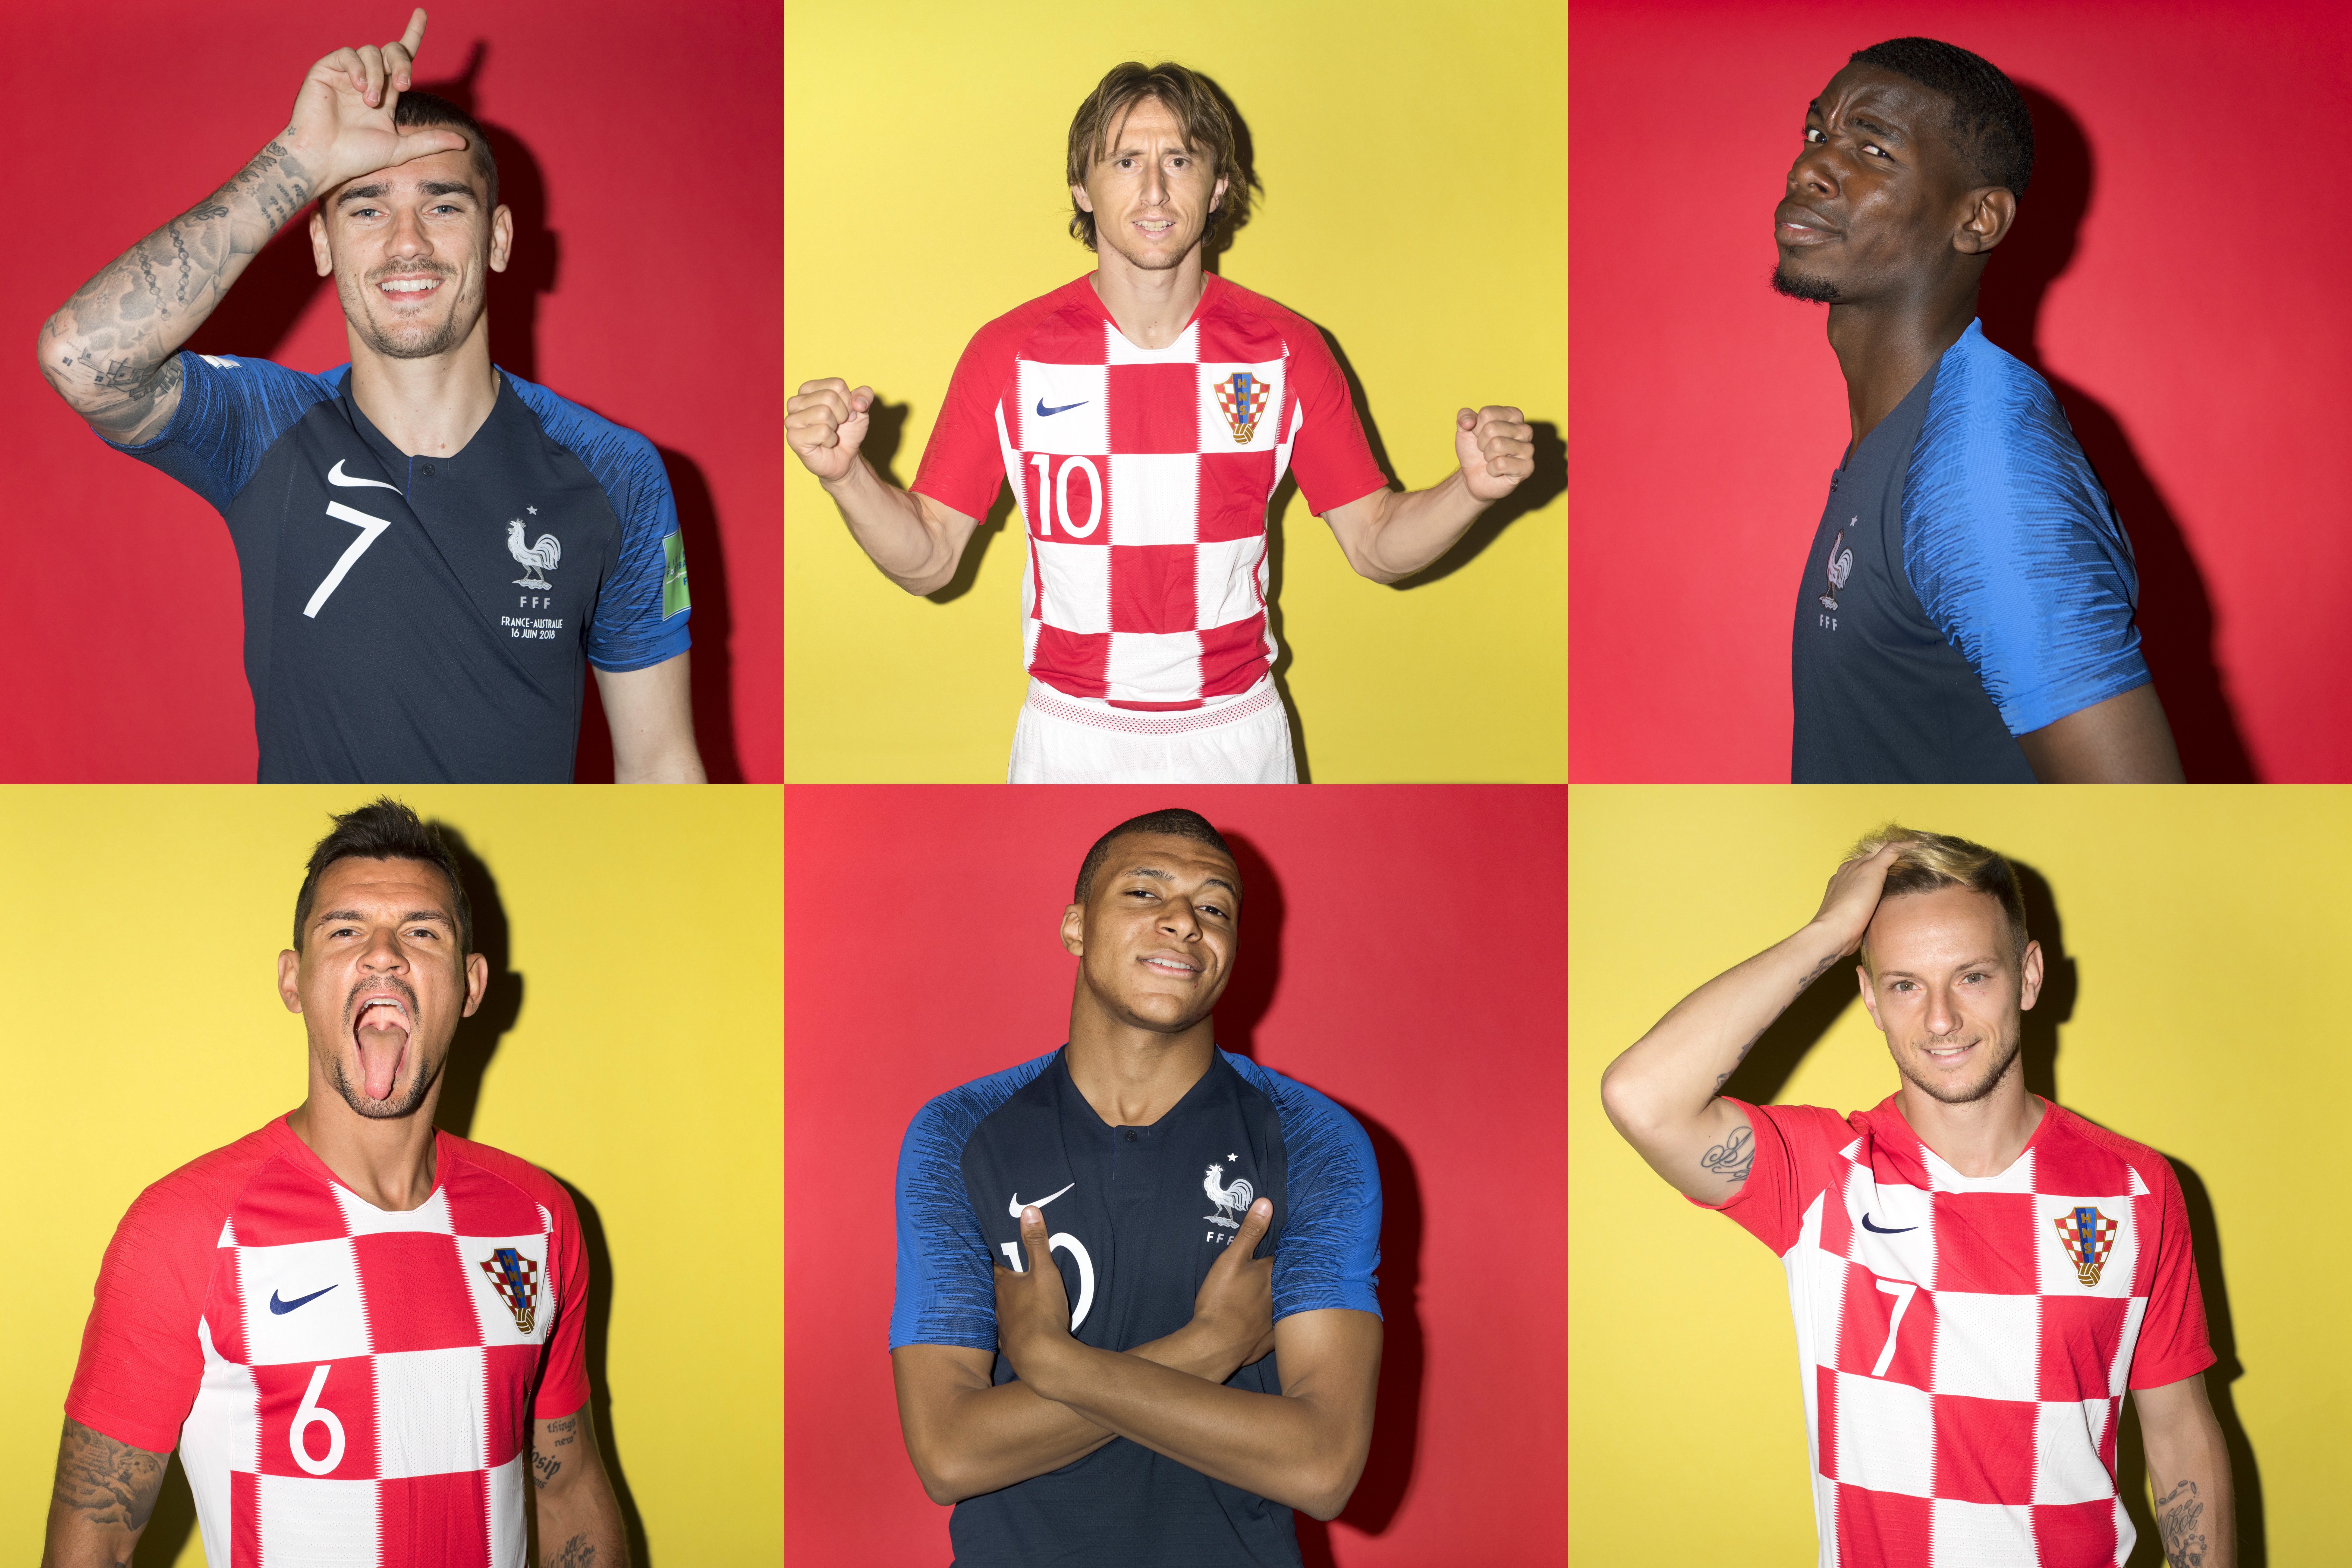 In this composite image a comparison has been made between the players France and Croatia.